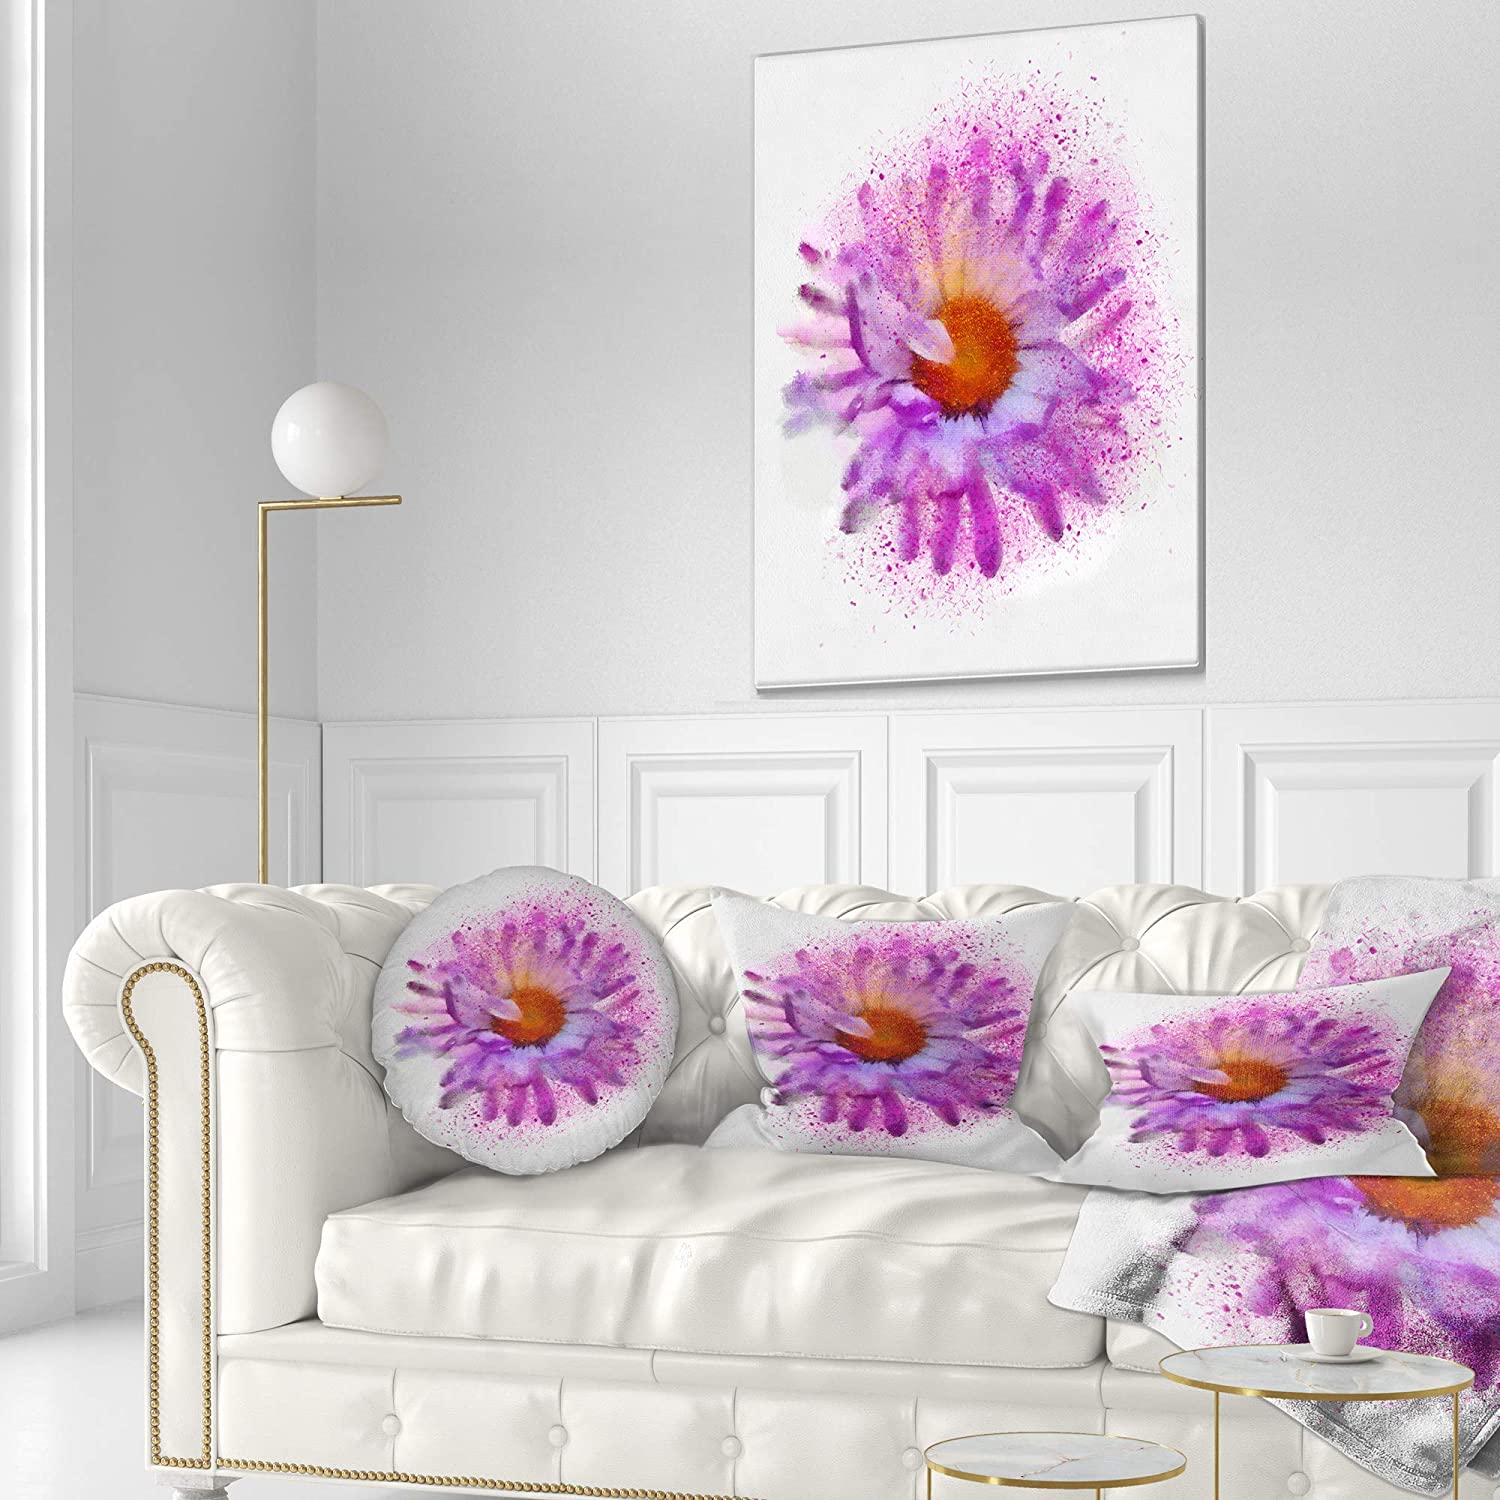 Insert Printed On Both Side Designart CU13710-16-16-C Large Purple Watercolor Flower Floral Round Cushion Cover for Living Room Sofa Throw Pillow 16